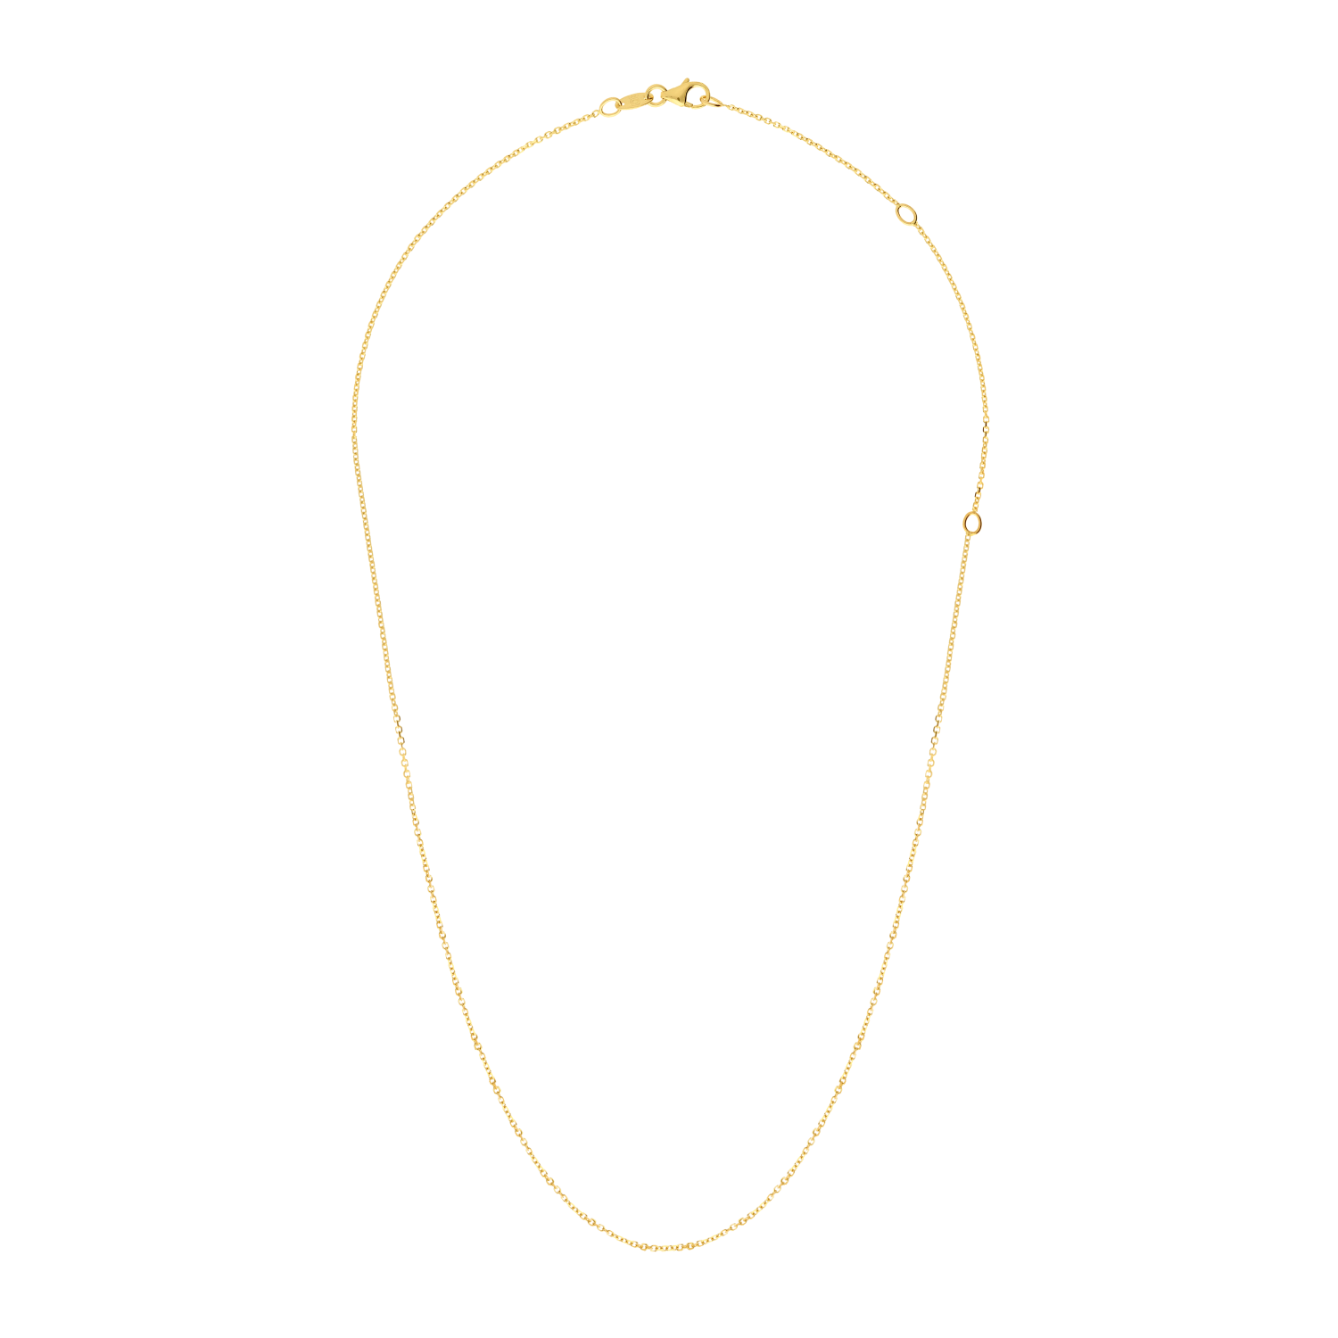 Solid Gold Chain3